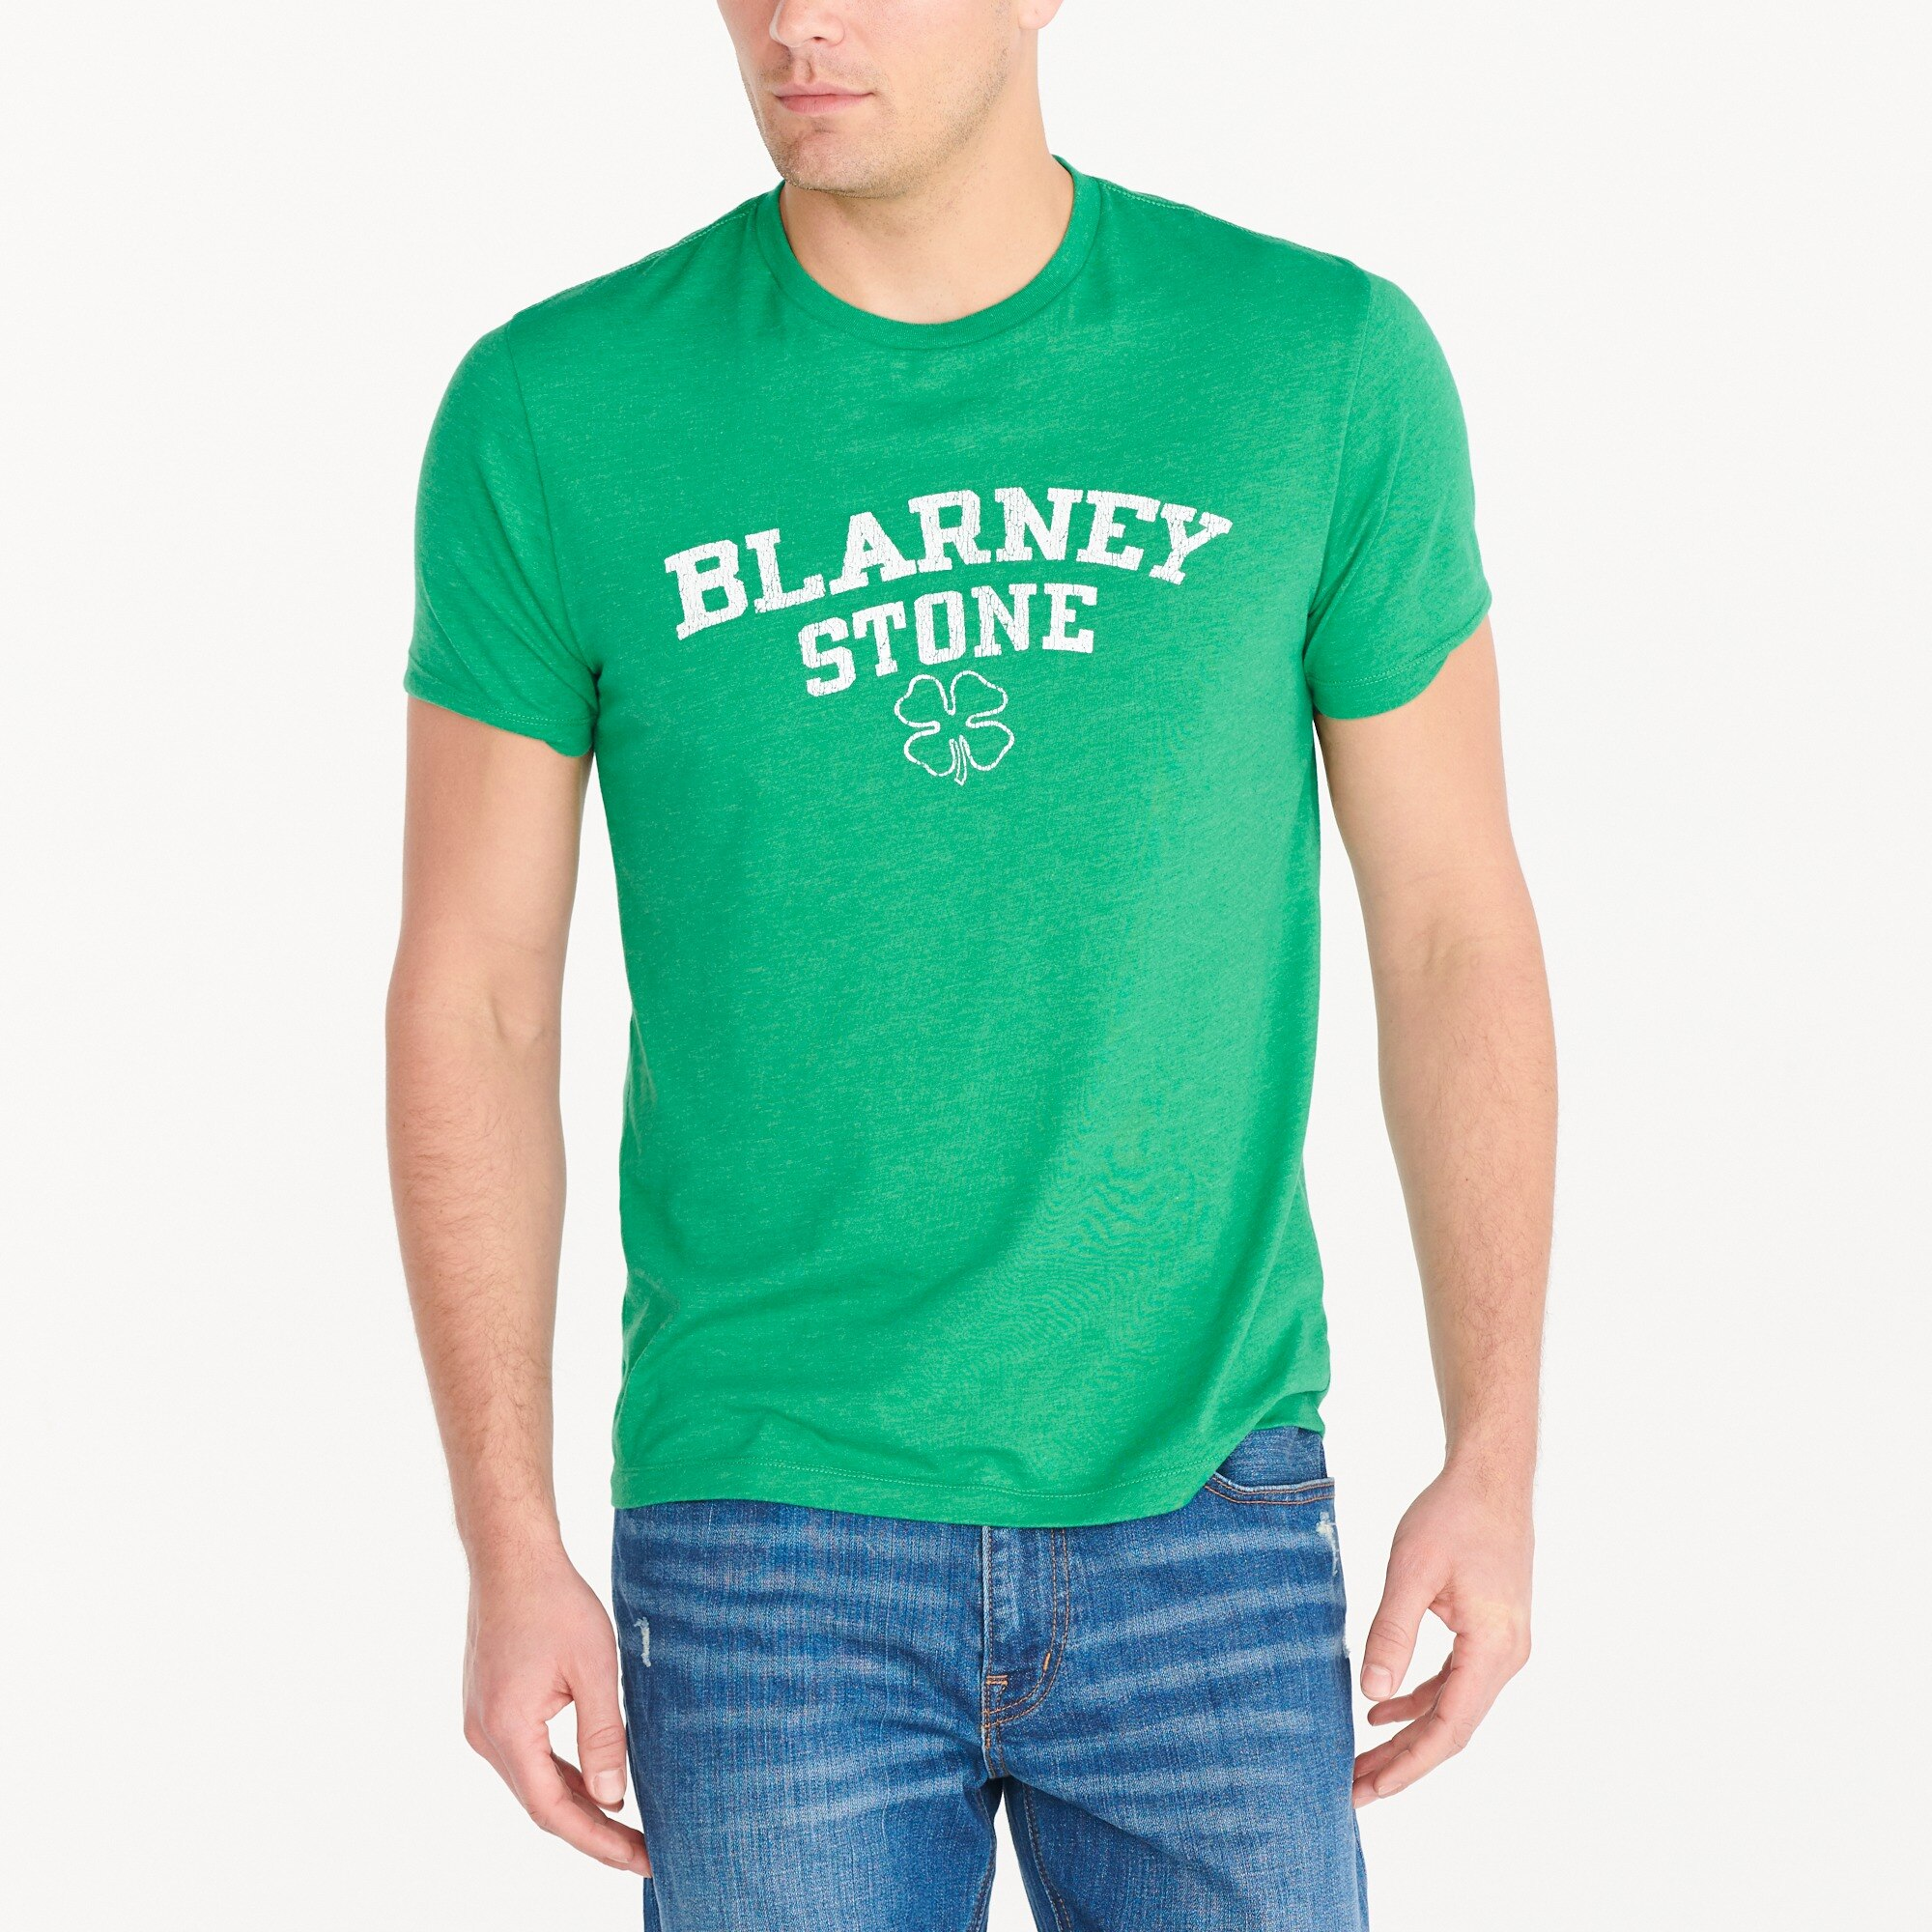 blarney stone graphic t-shirt : factorymen stripes & graphics